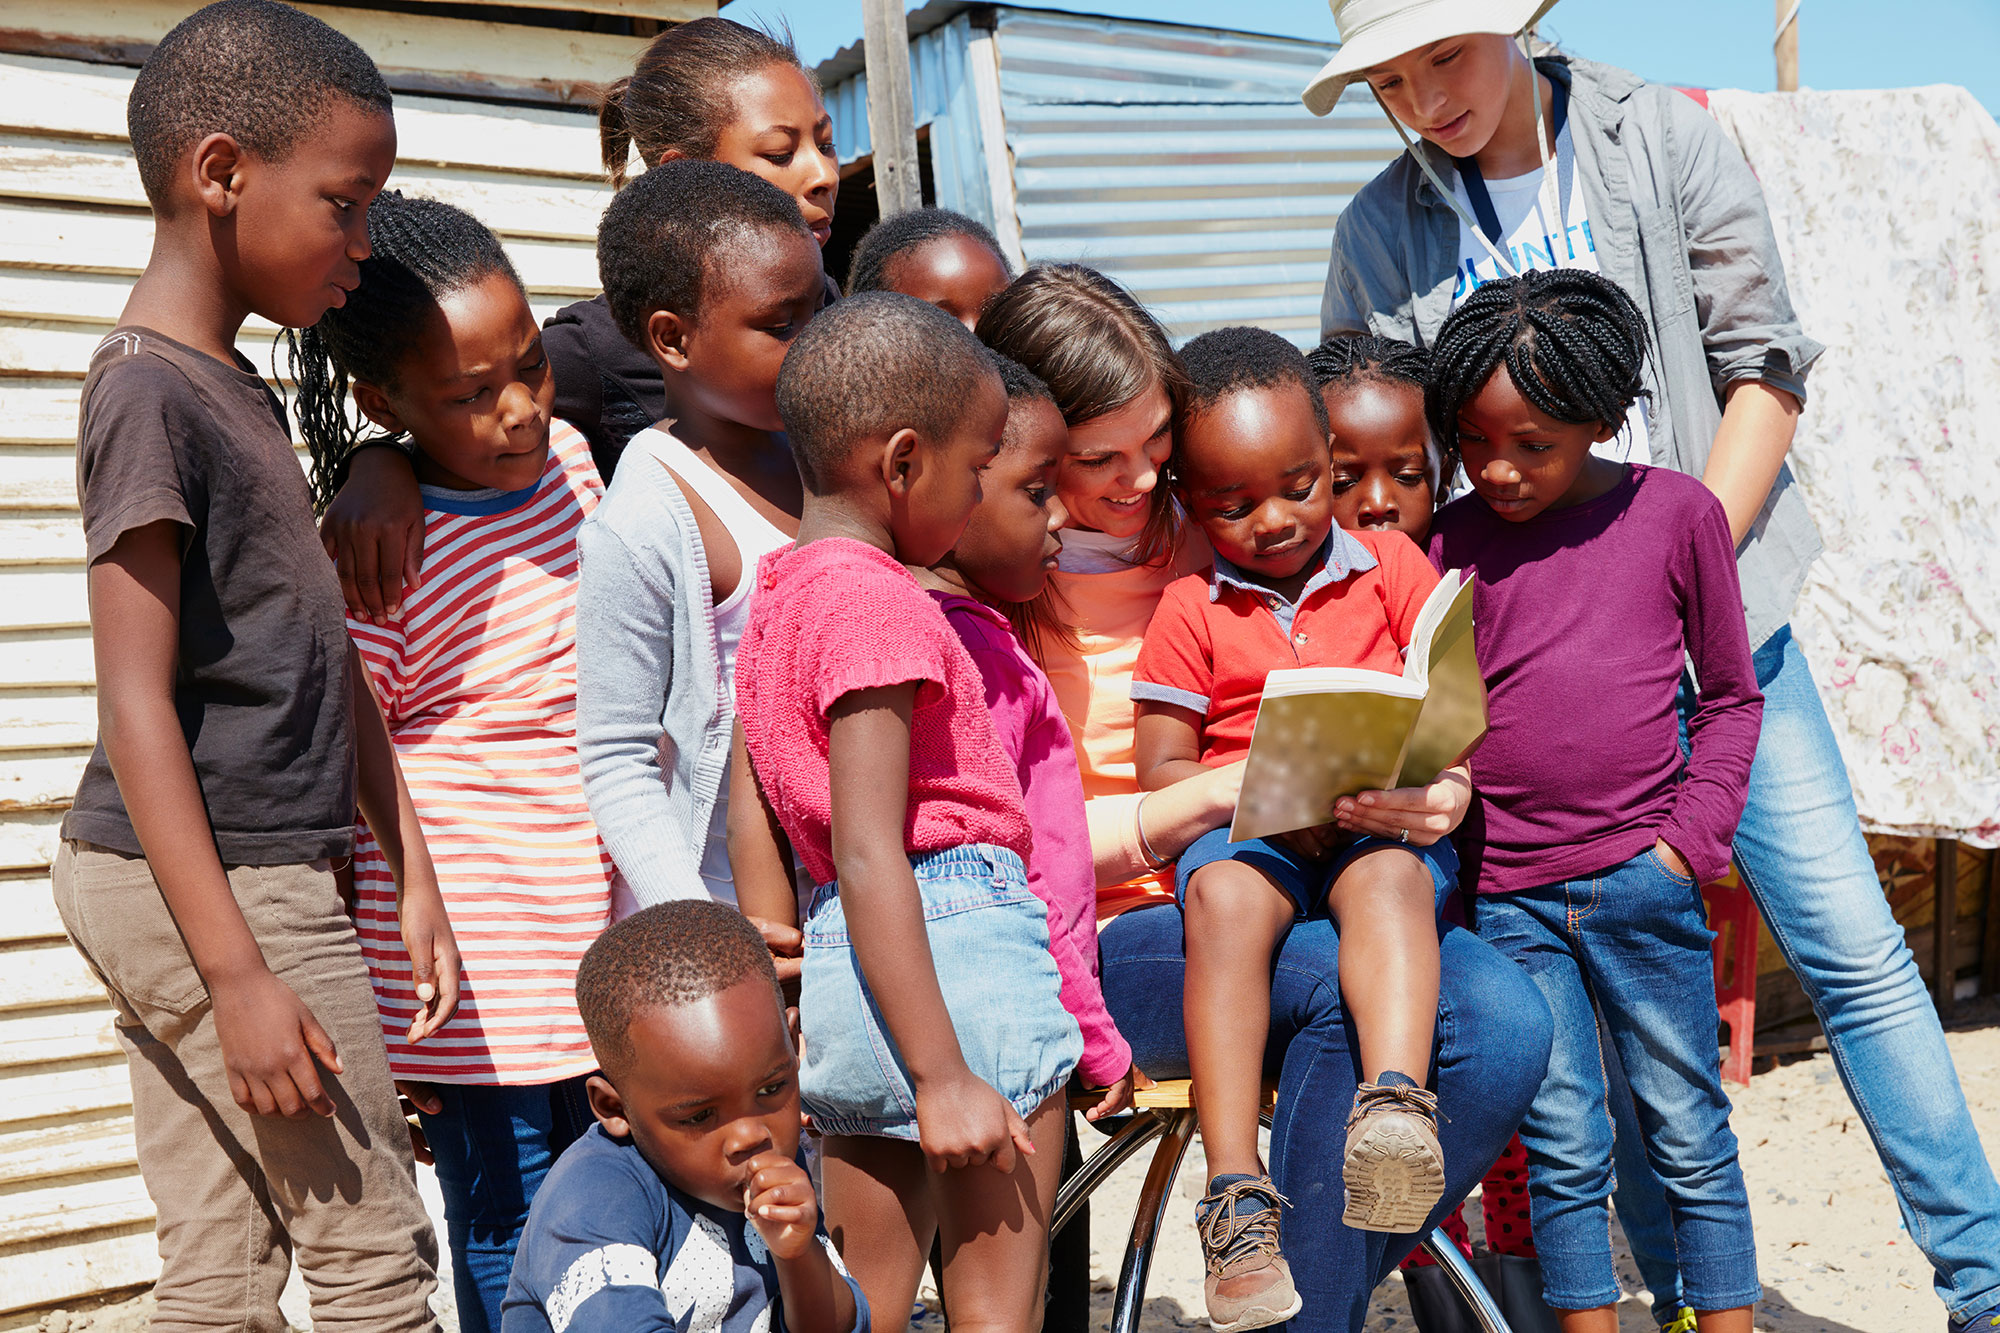 missionary reading book to group of kids africa mission travel